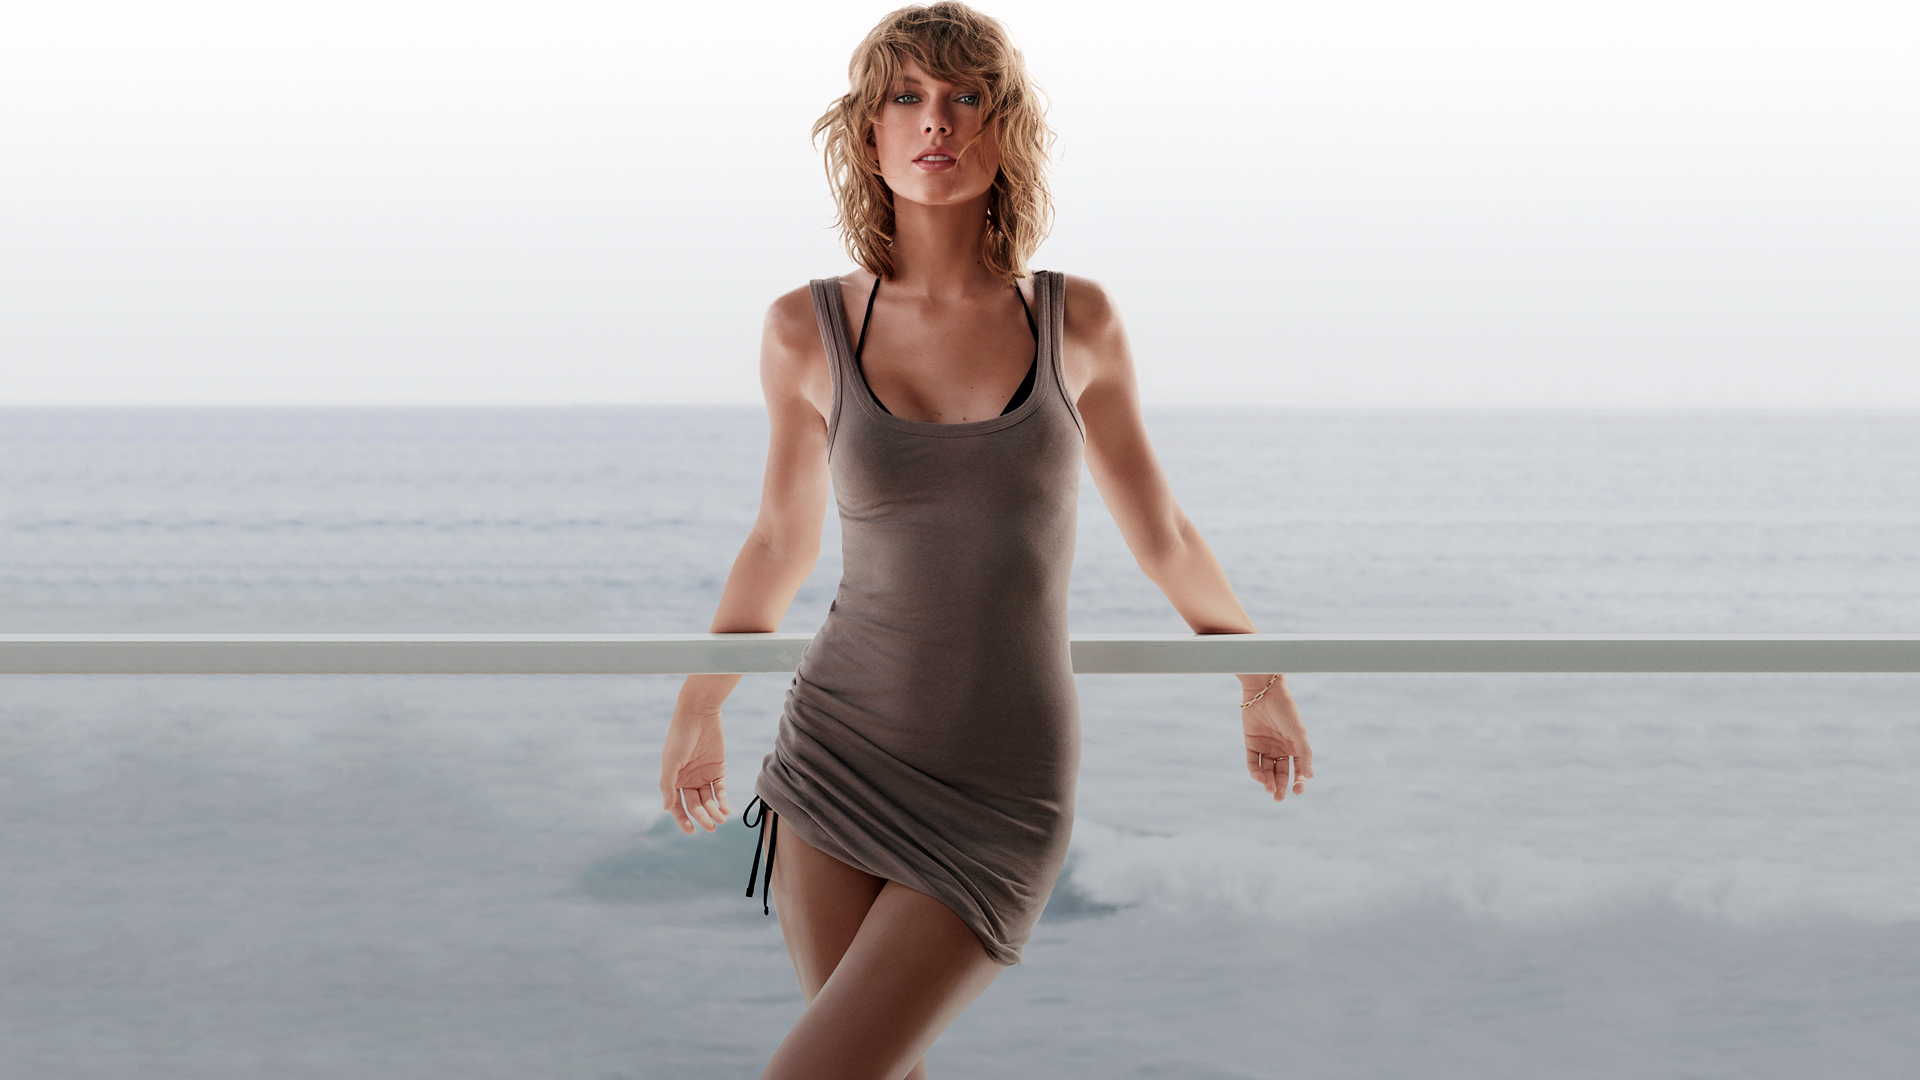 People 1920x1080 women musician Taylor Swift face legs water sea legs crossed horizon waves wavy hair